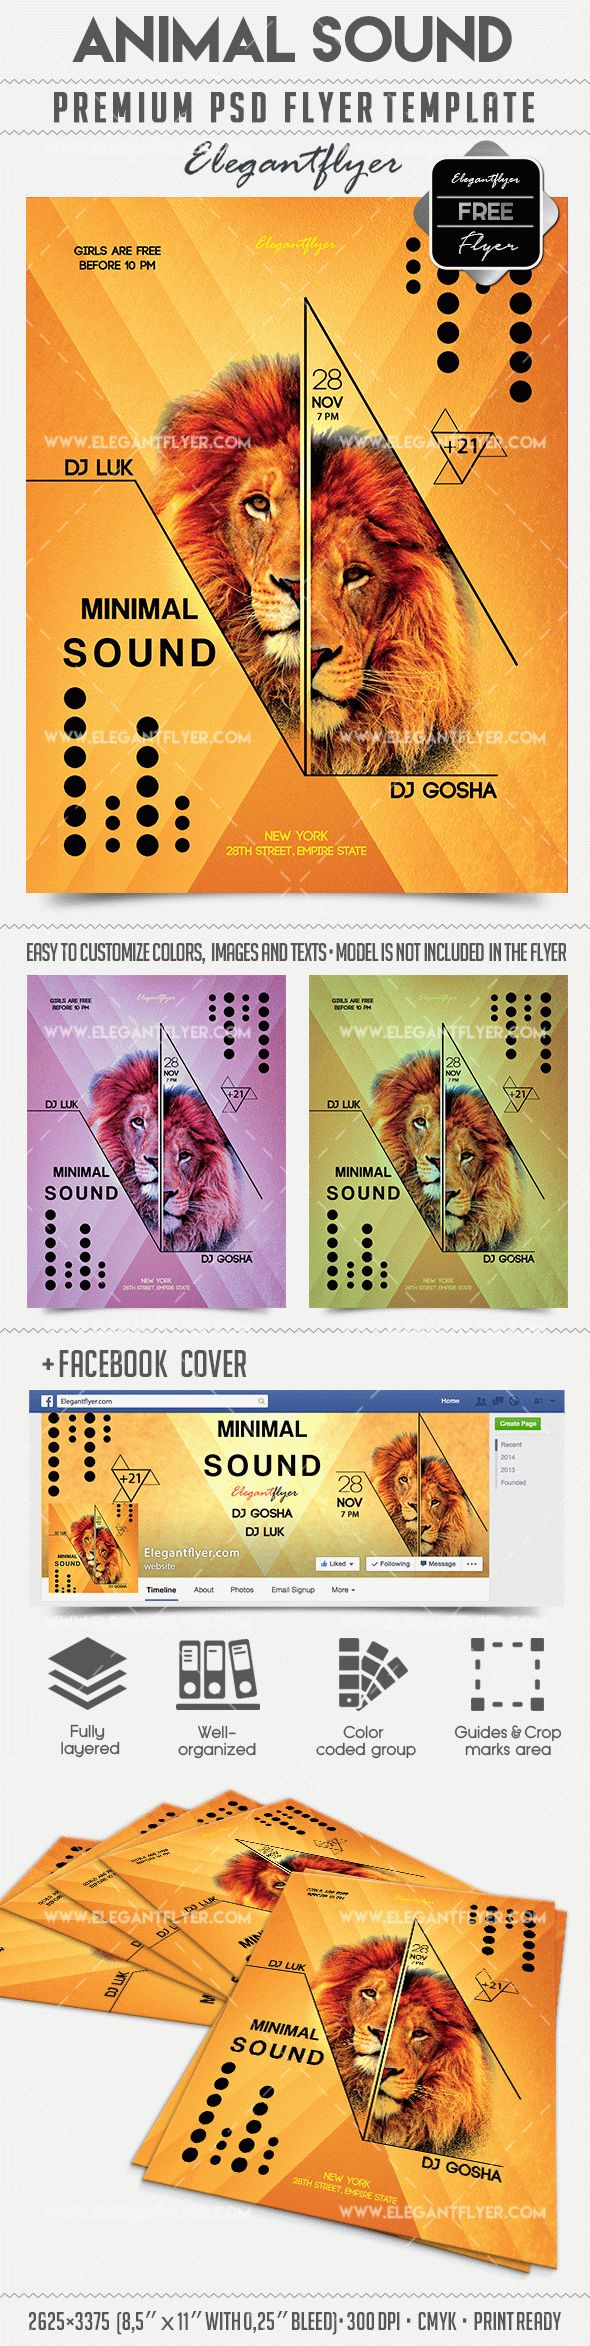 Animal Sound – Free Flyer PSD Template + Facebook Cover